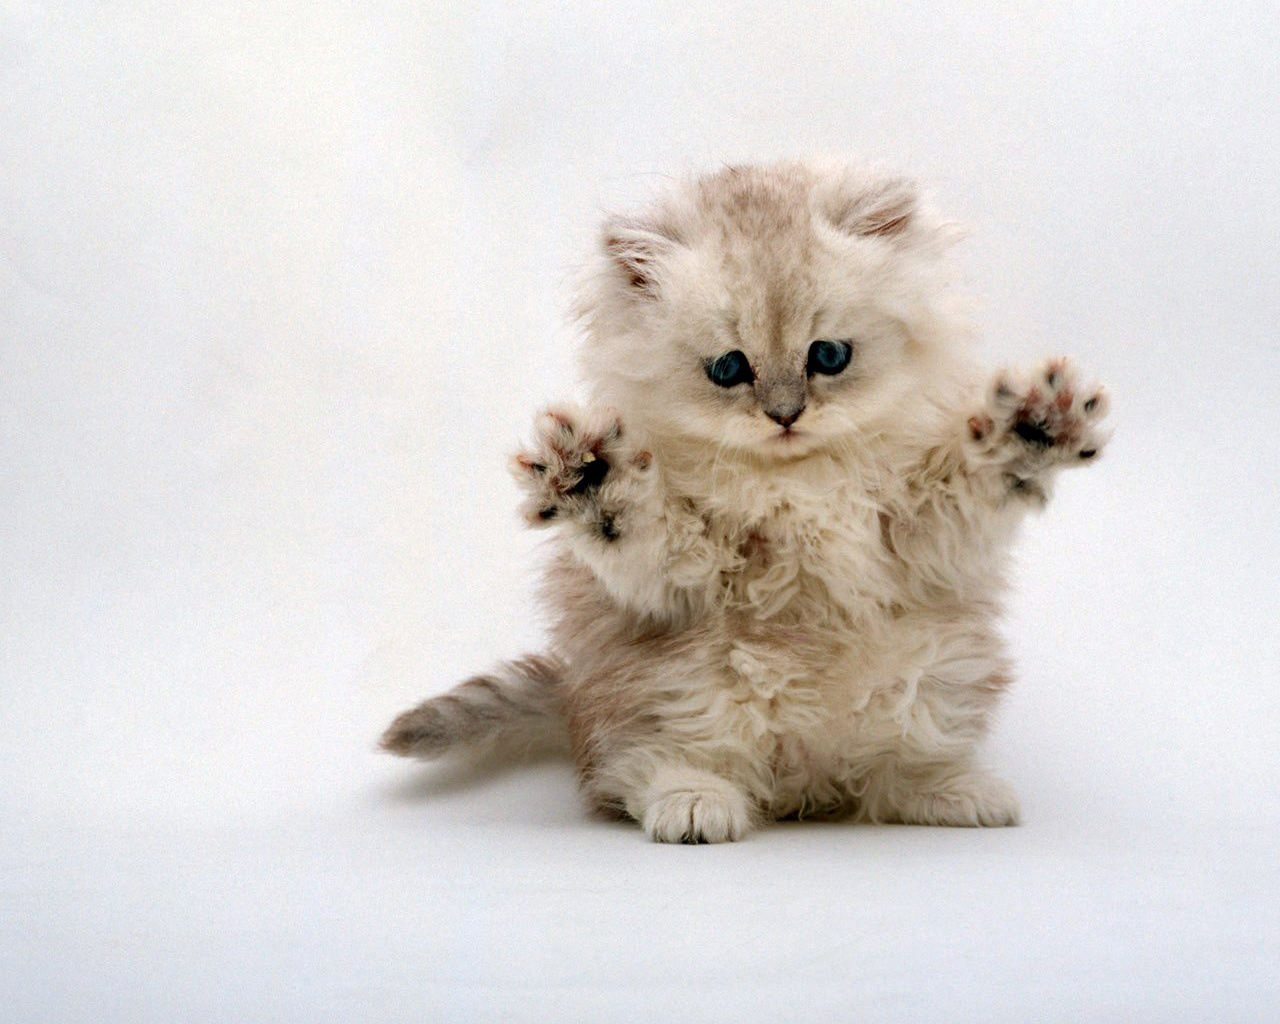 Wallpaper Cute Cats Kittens 29 Cat Backgrounds Wallpapers Images Design Trends